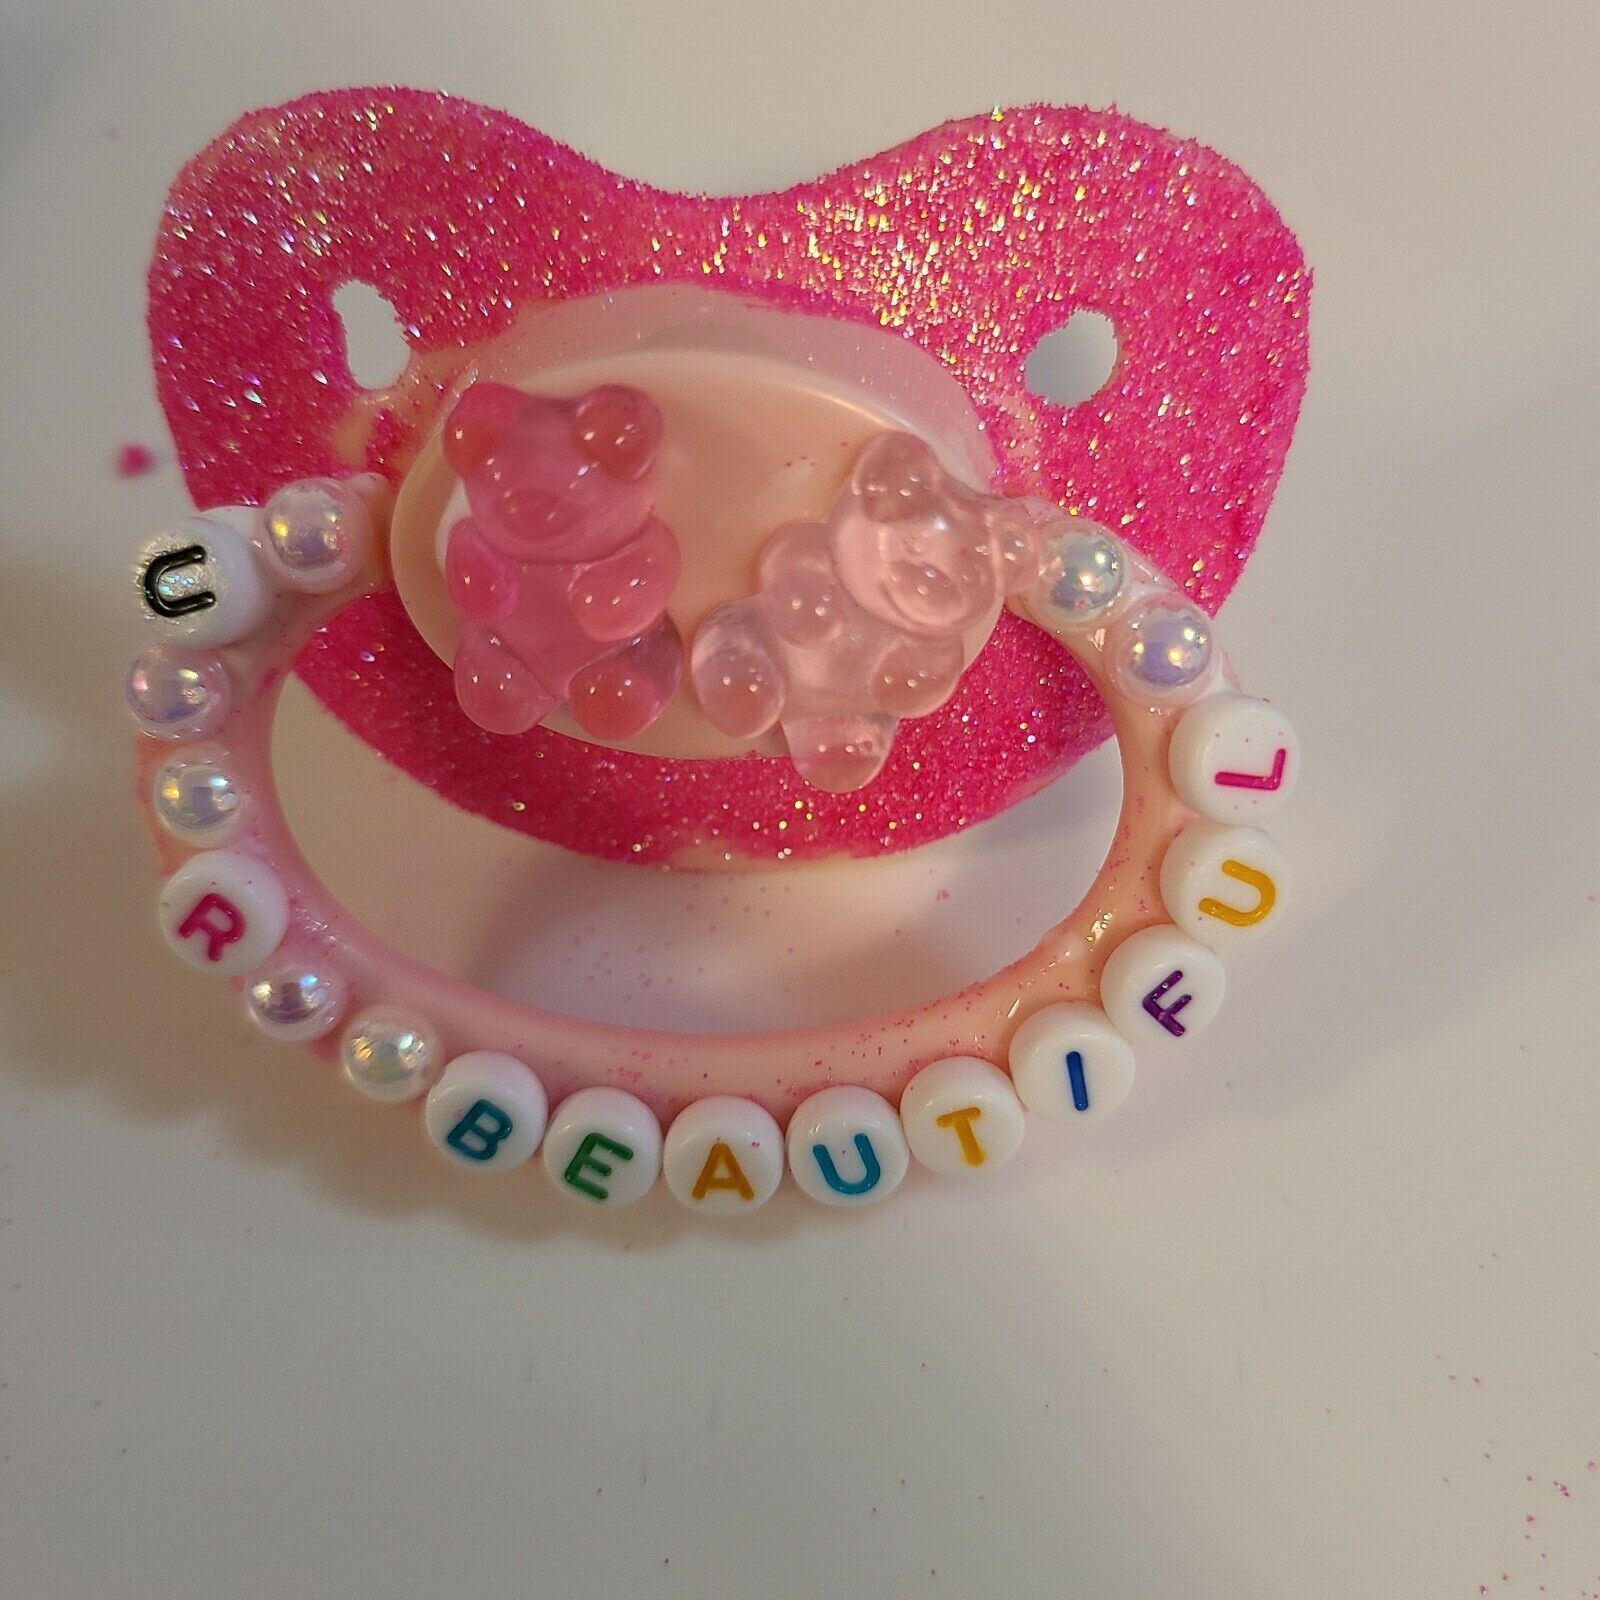 DDLG-ABDL ADULT PACIFIER/ U R BEAUTIFUL/ PINK - $35.00